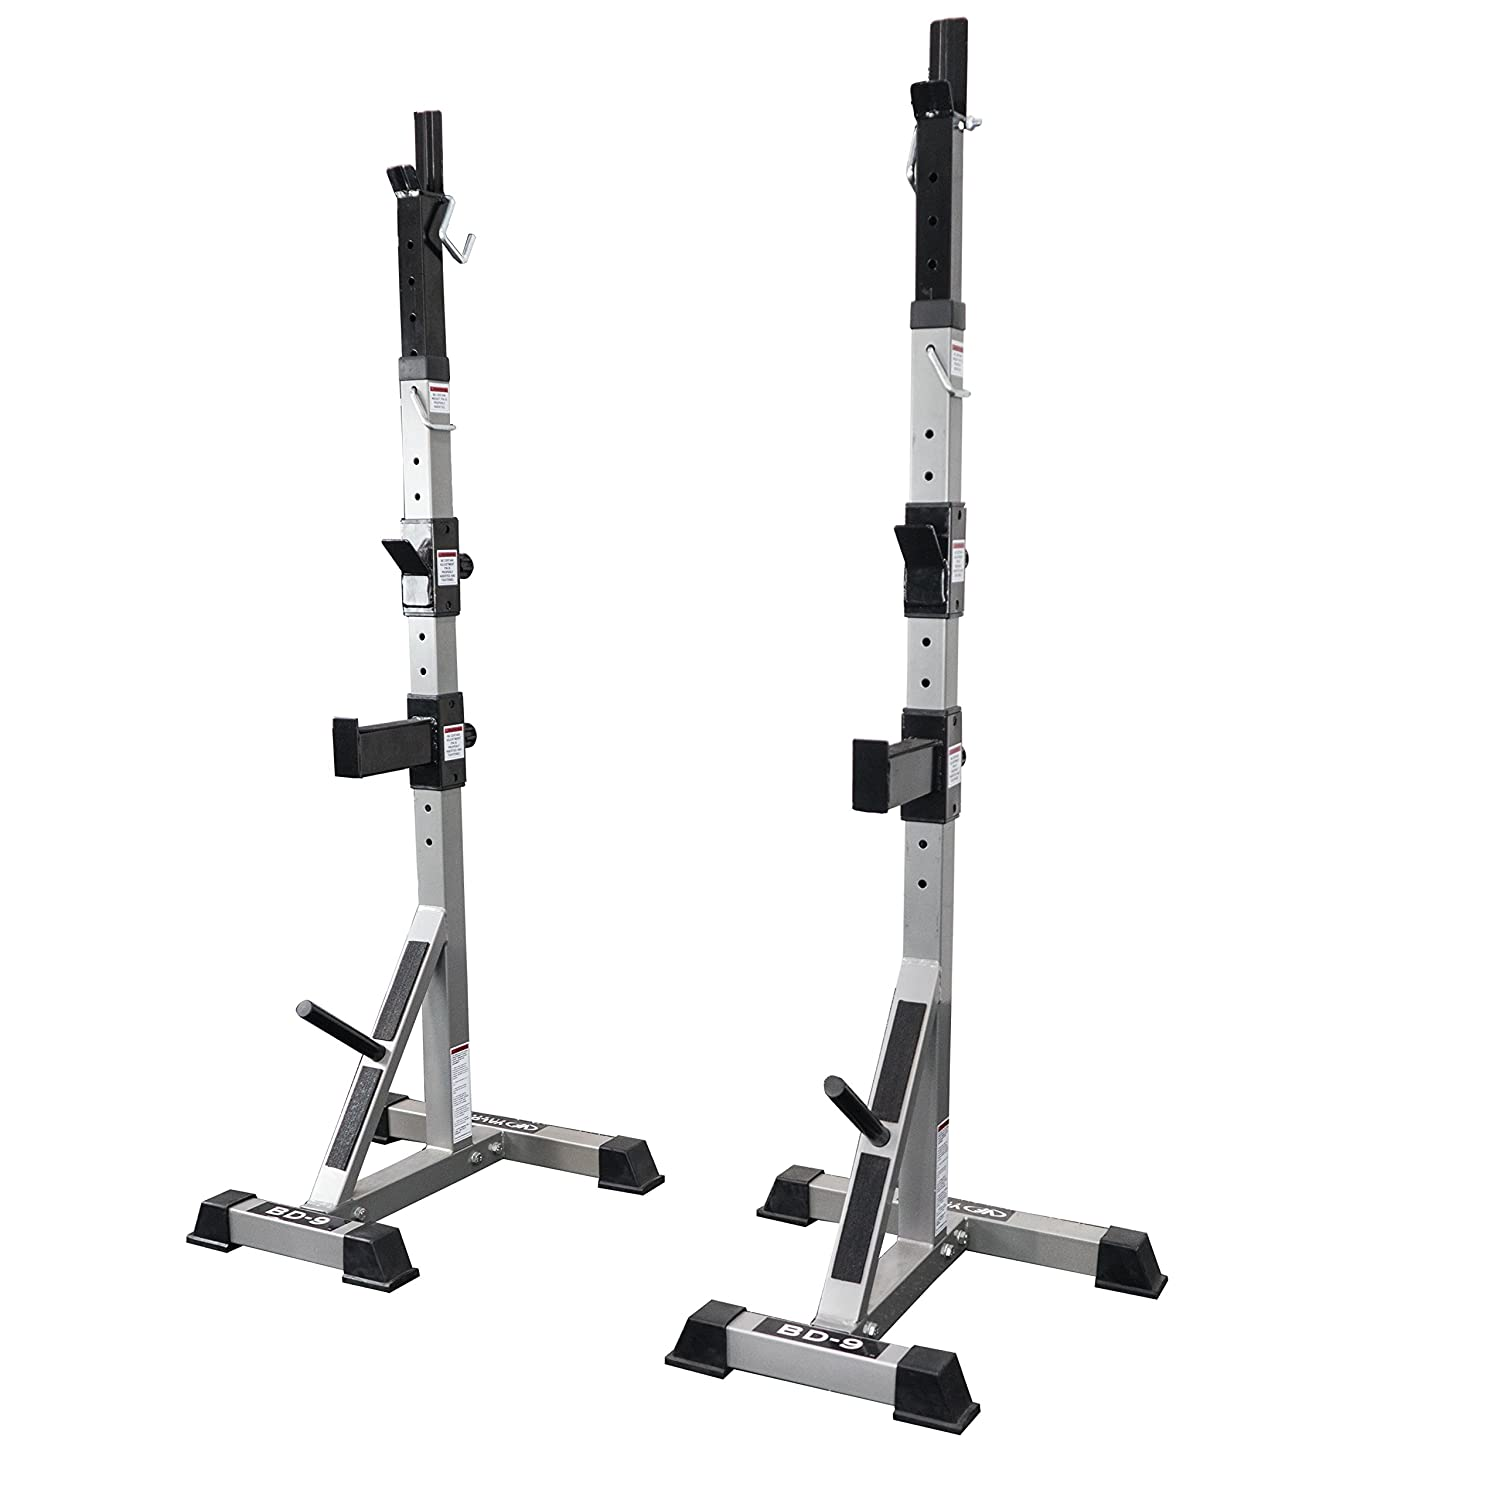 Valor Fitness BD Independent Bench Press and Squat Rack Stands with Adjustable Uprights and Safety Catches